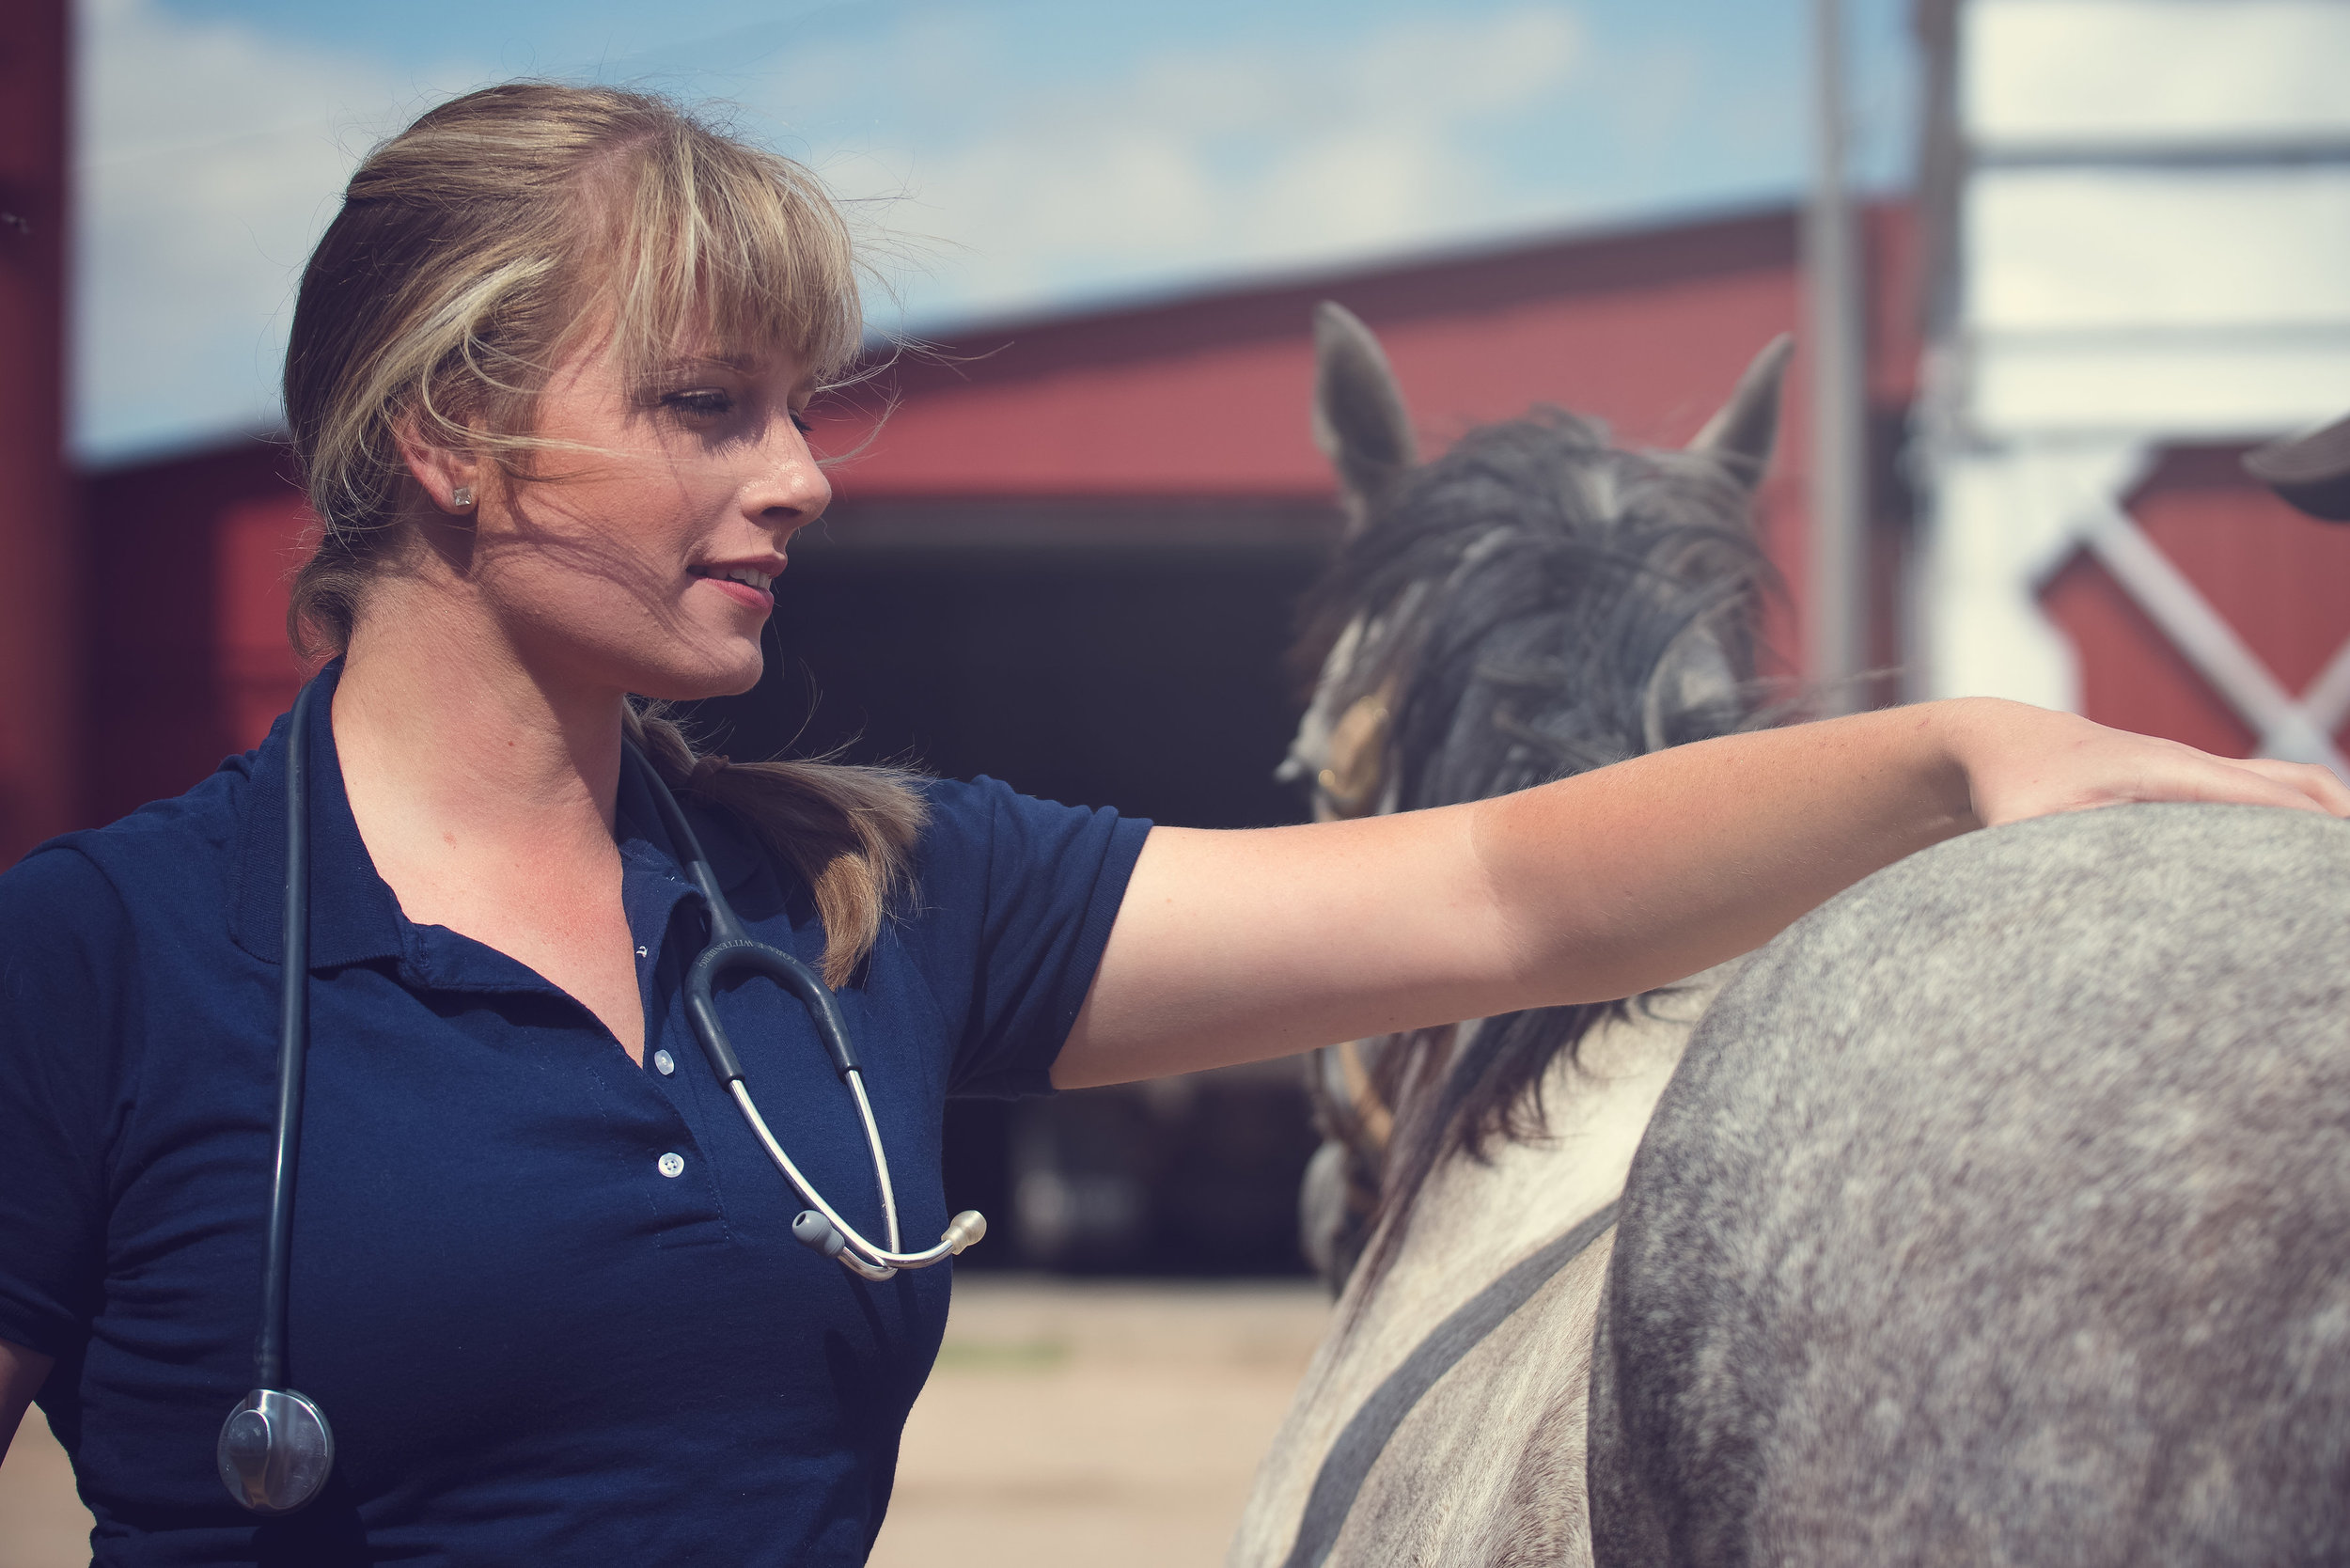 Emergency References - Bledsoe Mobile Vet does not offer 24-hour emergency coverage at this time. For immediate life-threatening emergencies outside of our regular business hours, we recommend the following emergency large animal care providers in our area: